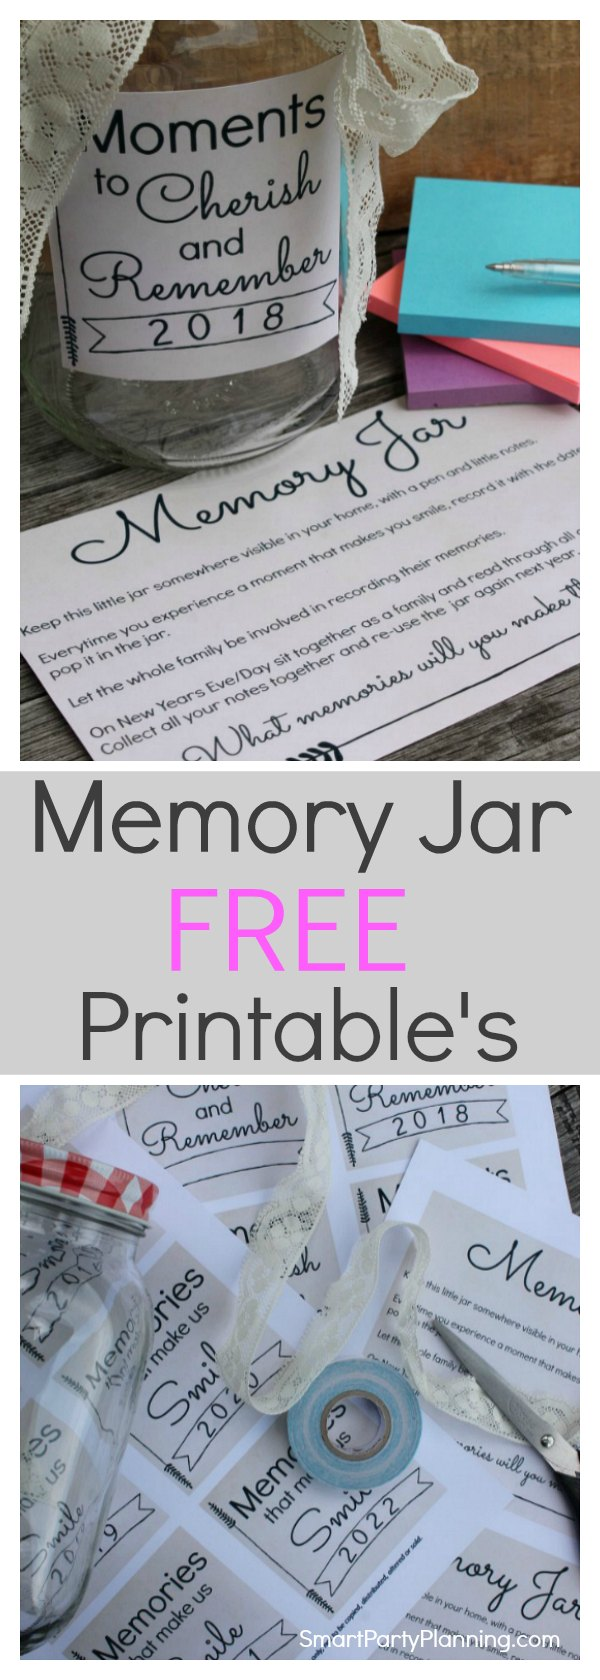 Learn how to make a memory jar as a great alternative to writing a journal. Free printable's are available to make this an easy DIY. A memory jar is the best way to capture the moments taken place during the year which can easily be forgotten. A memory jar printable is available from 2018-2022, plus an instruction sheet. Click to get the free printable's in two designs.